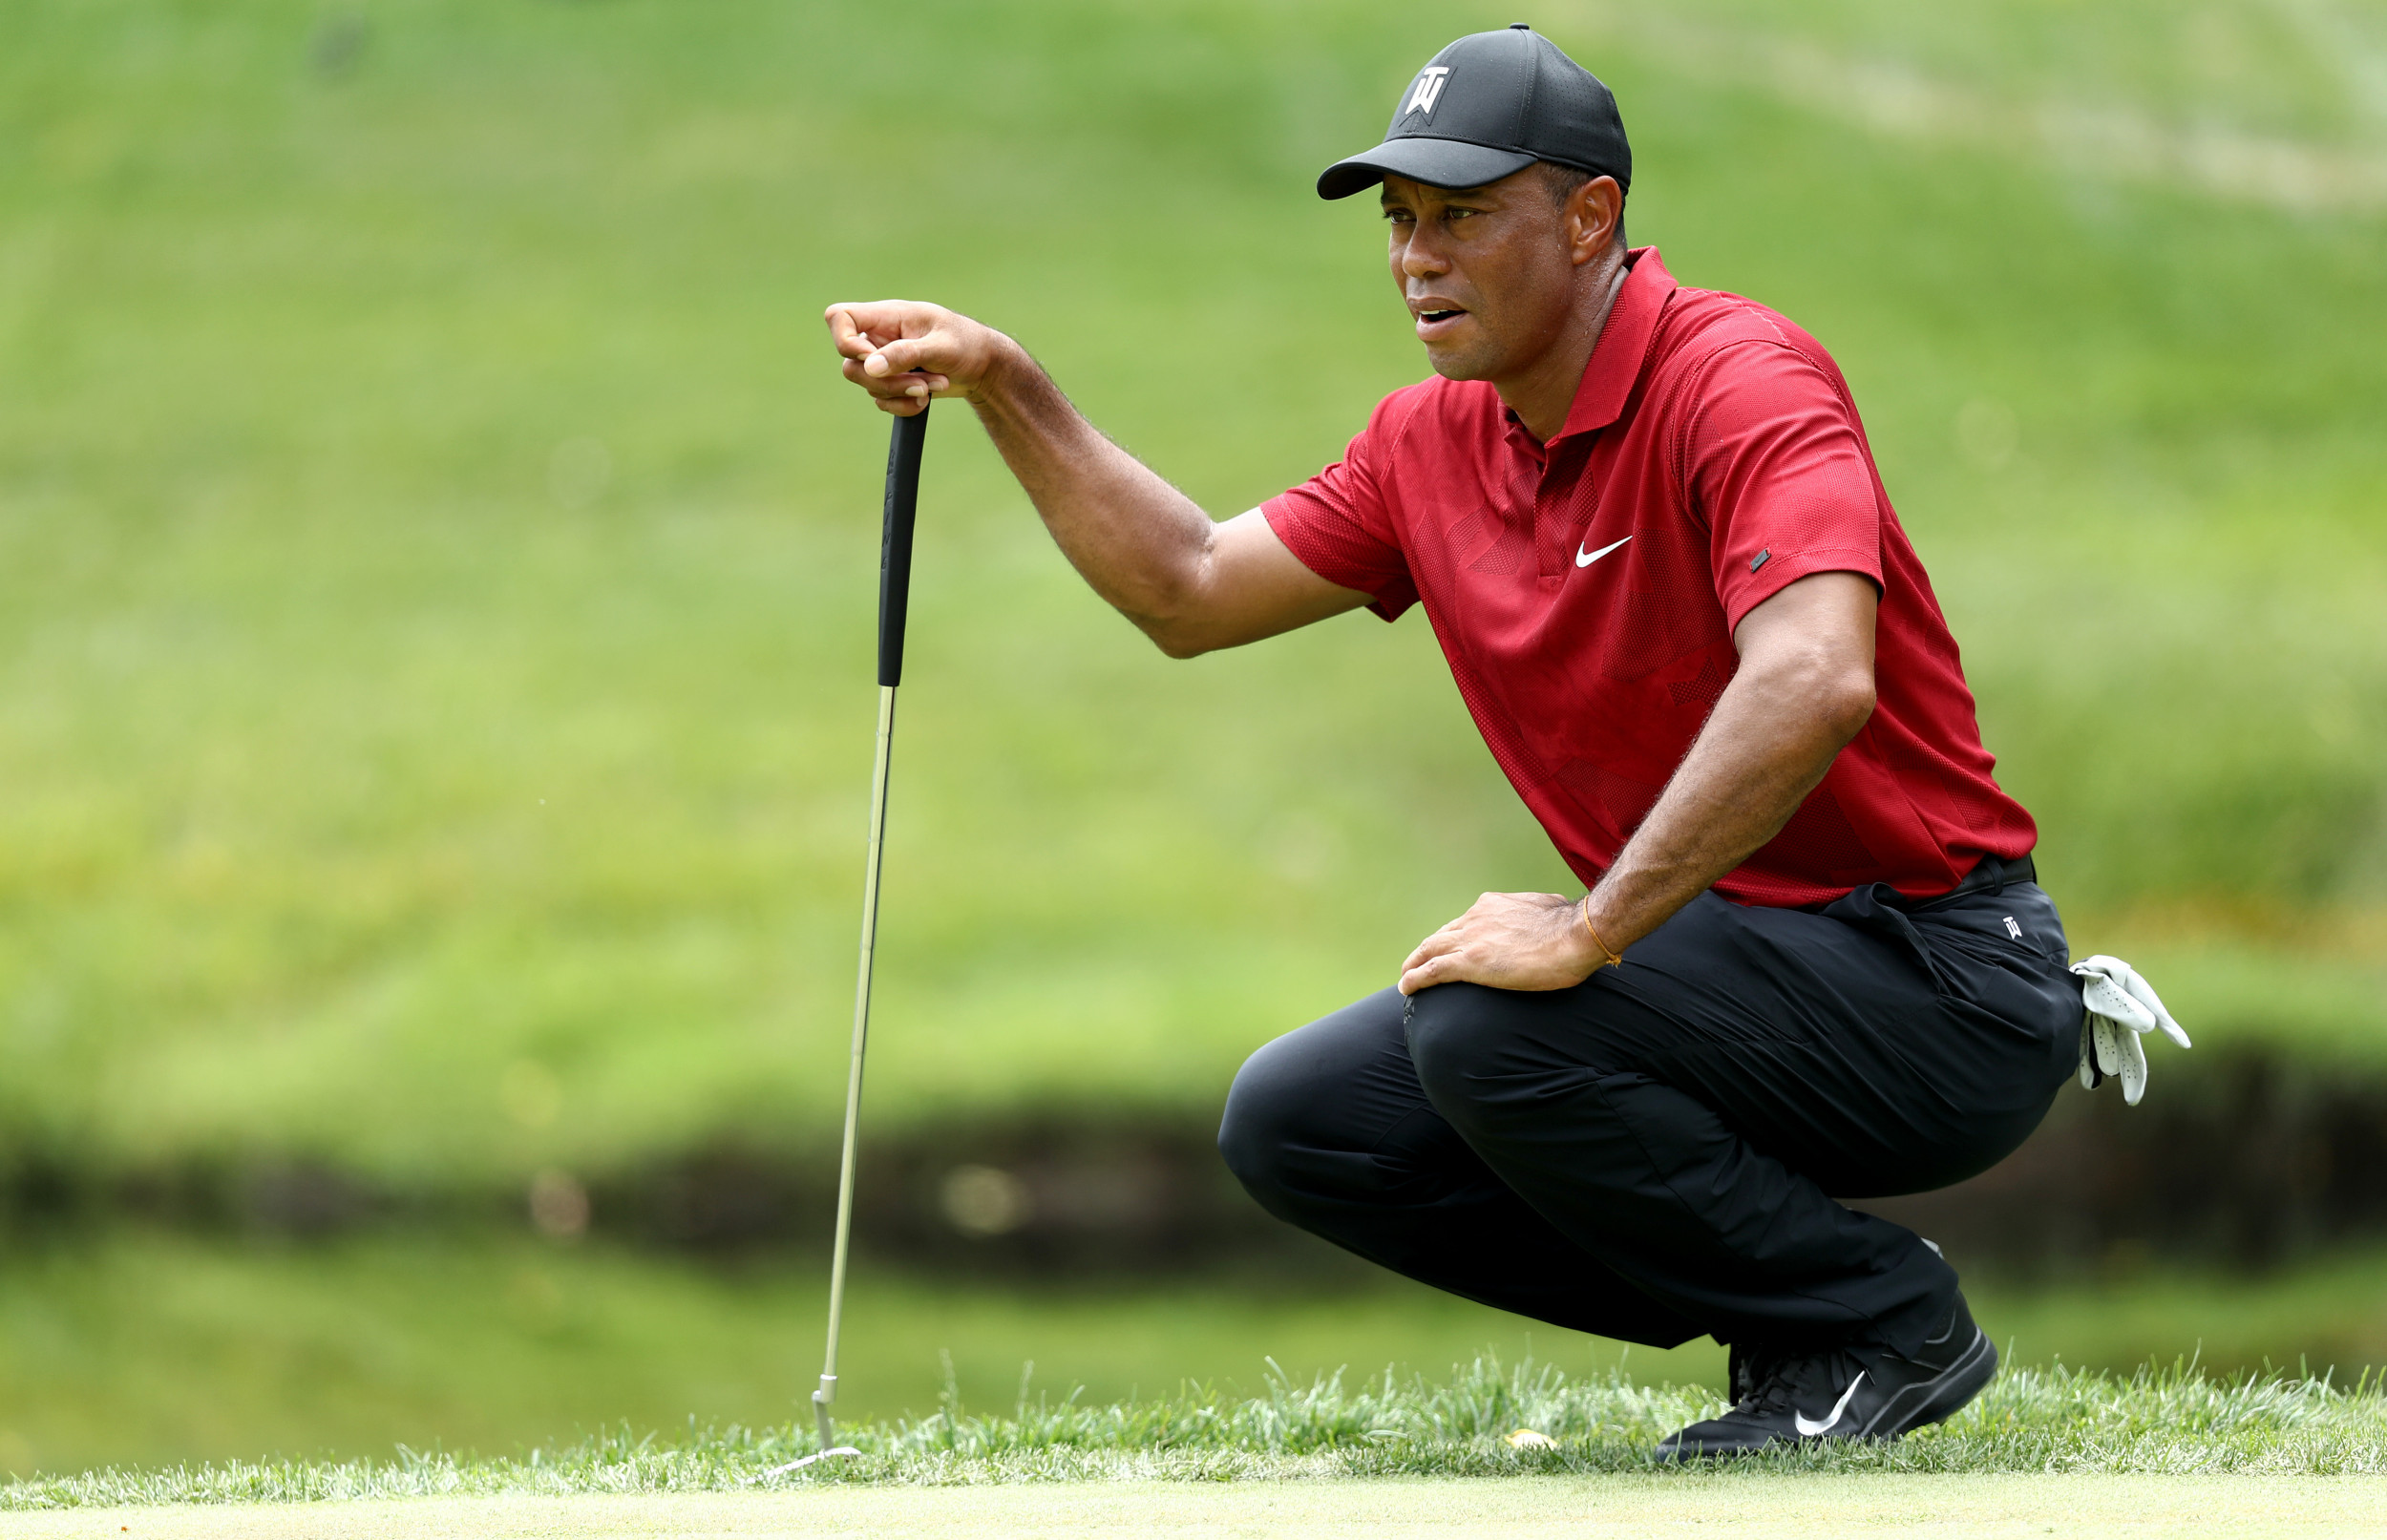 Tiger woods in golf shirt